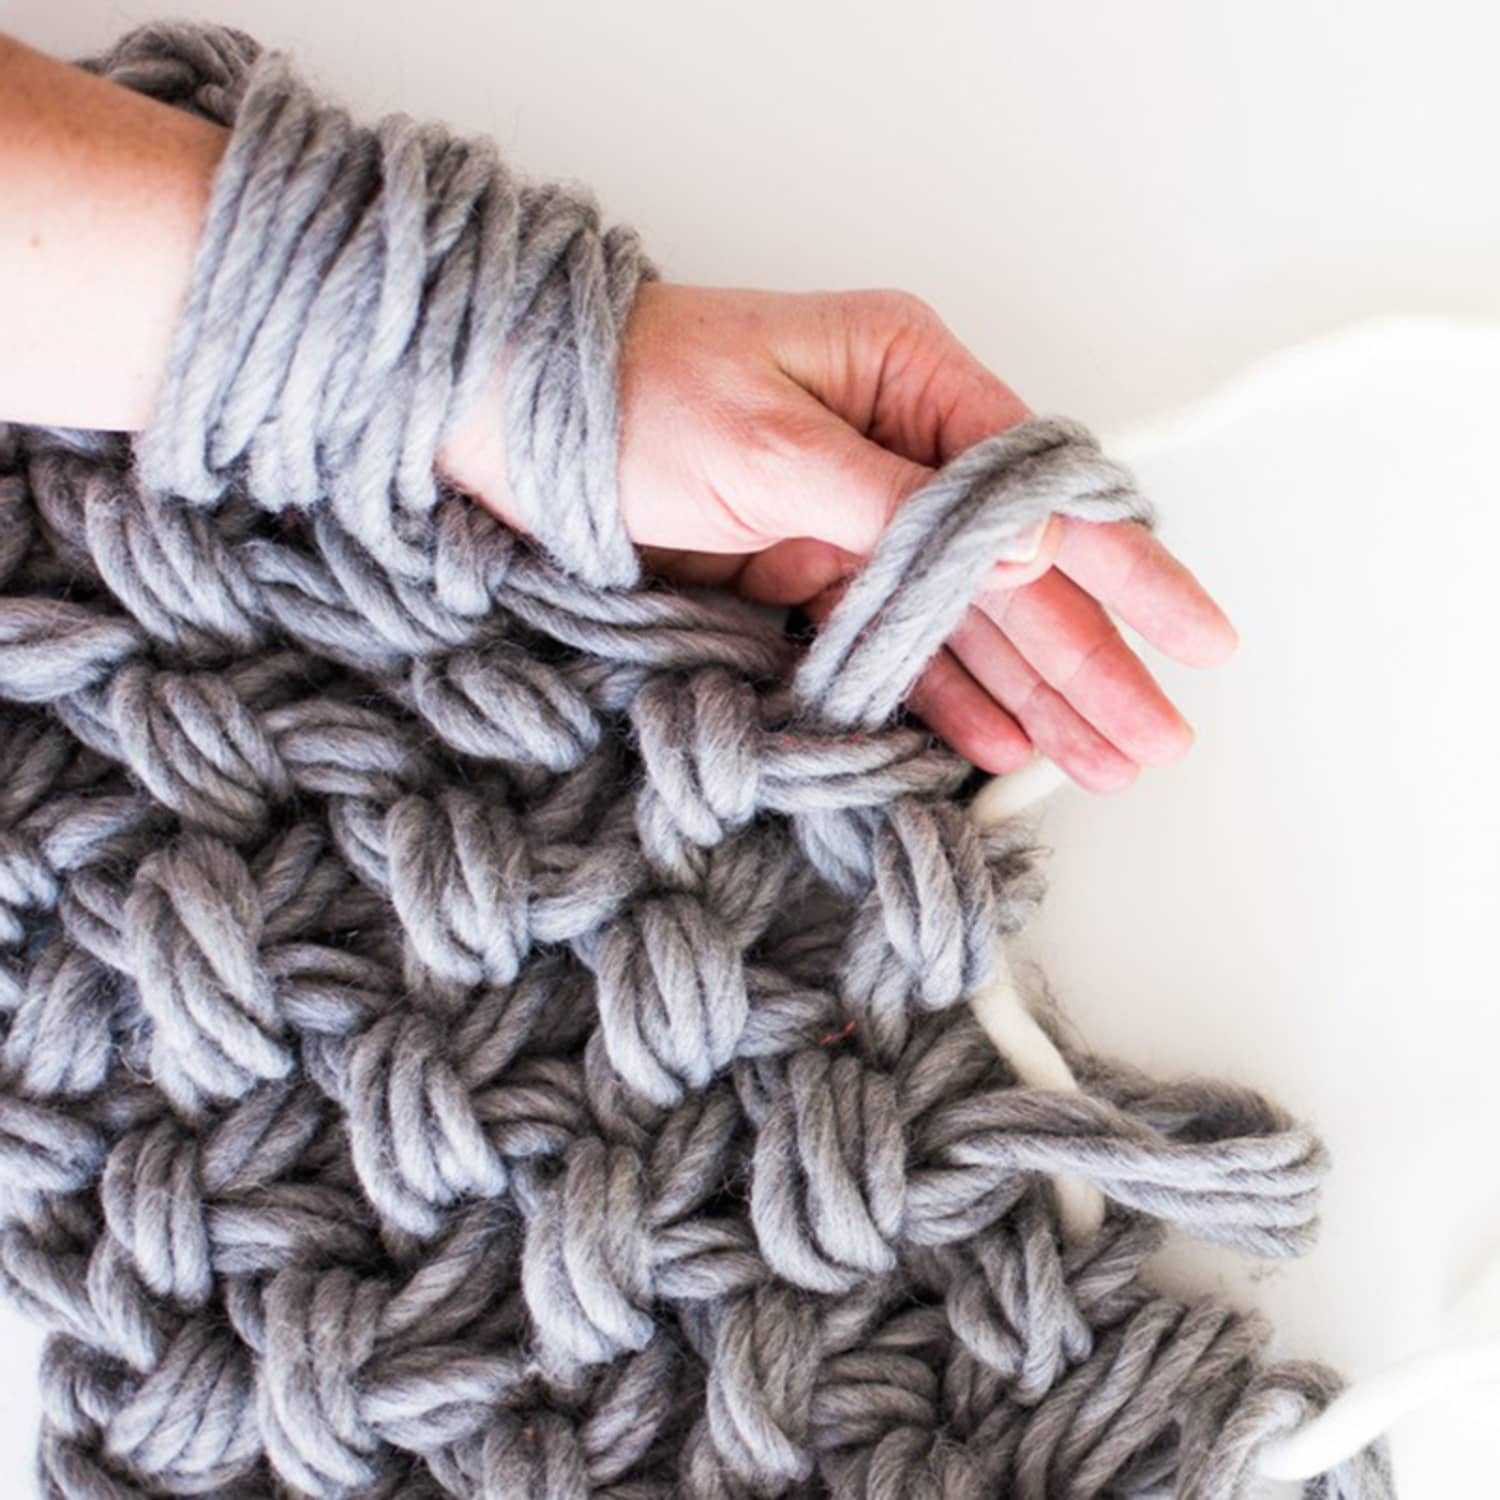 Arm knitting yarn type